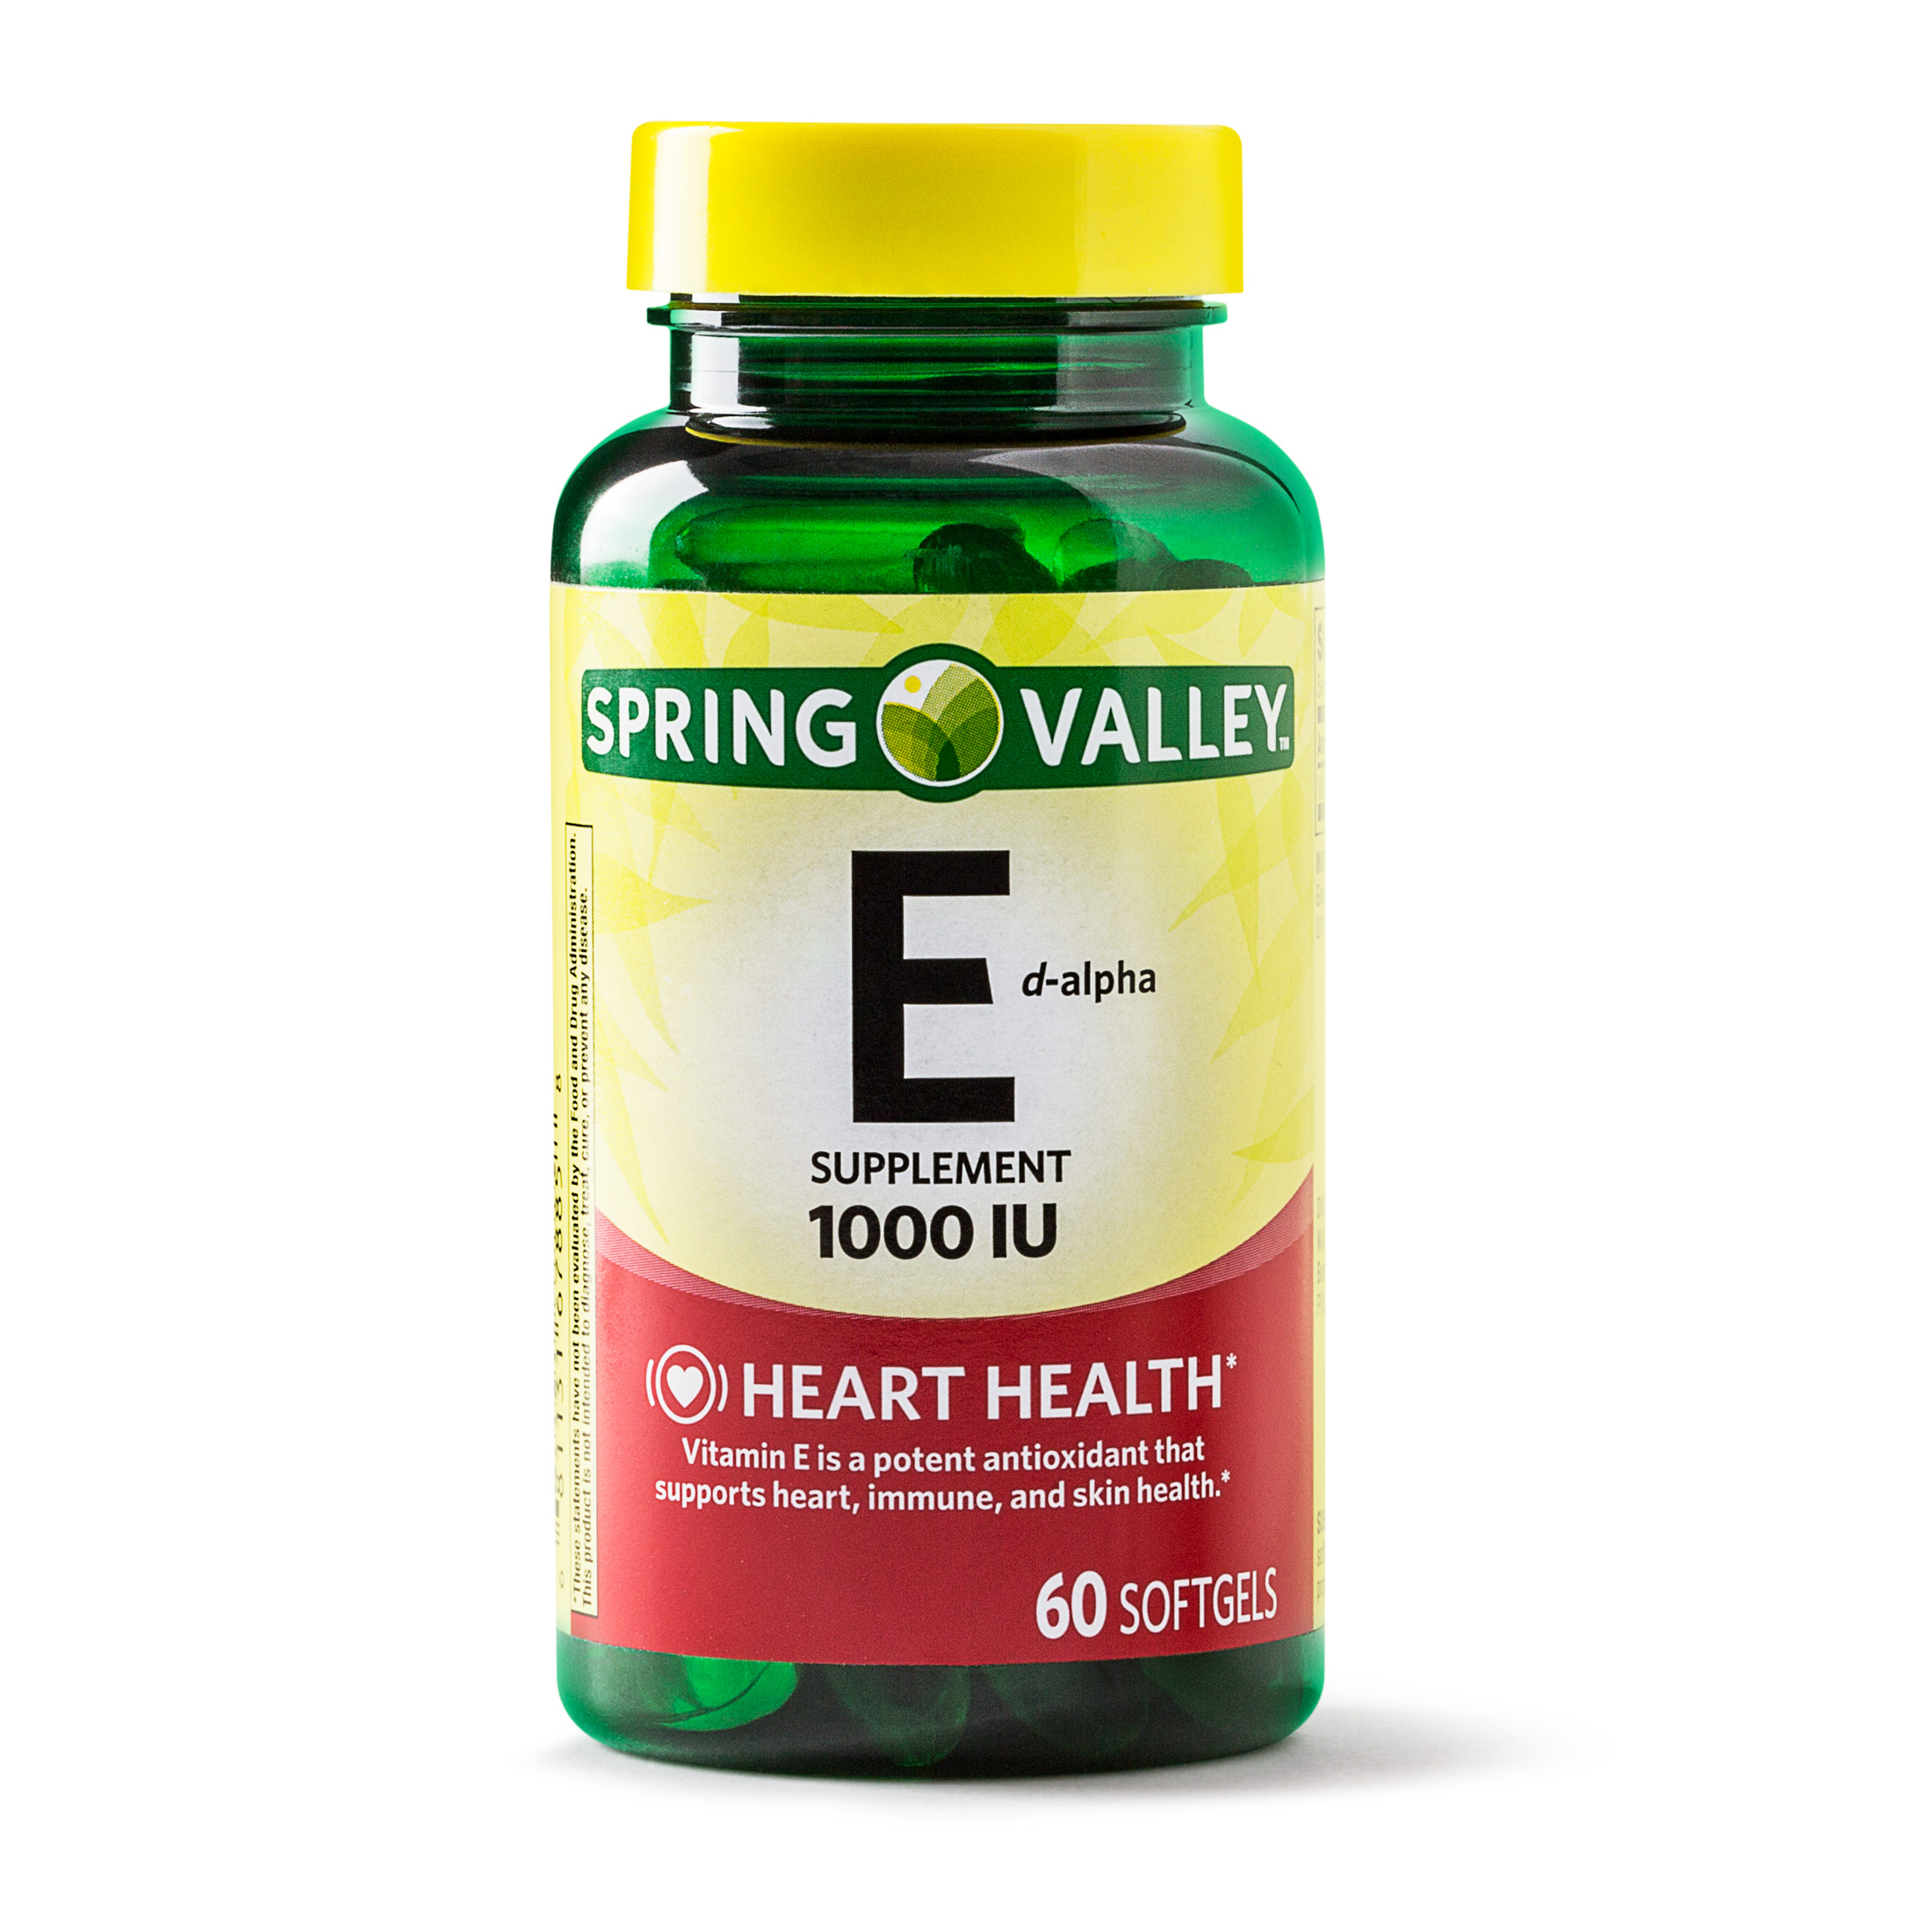 Spring Valley Vitamin E Softgels, 1000IU, 60Ct